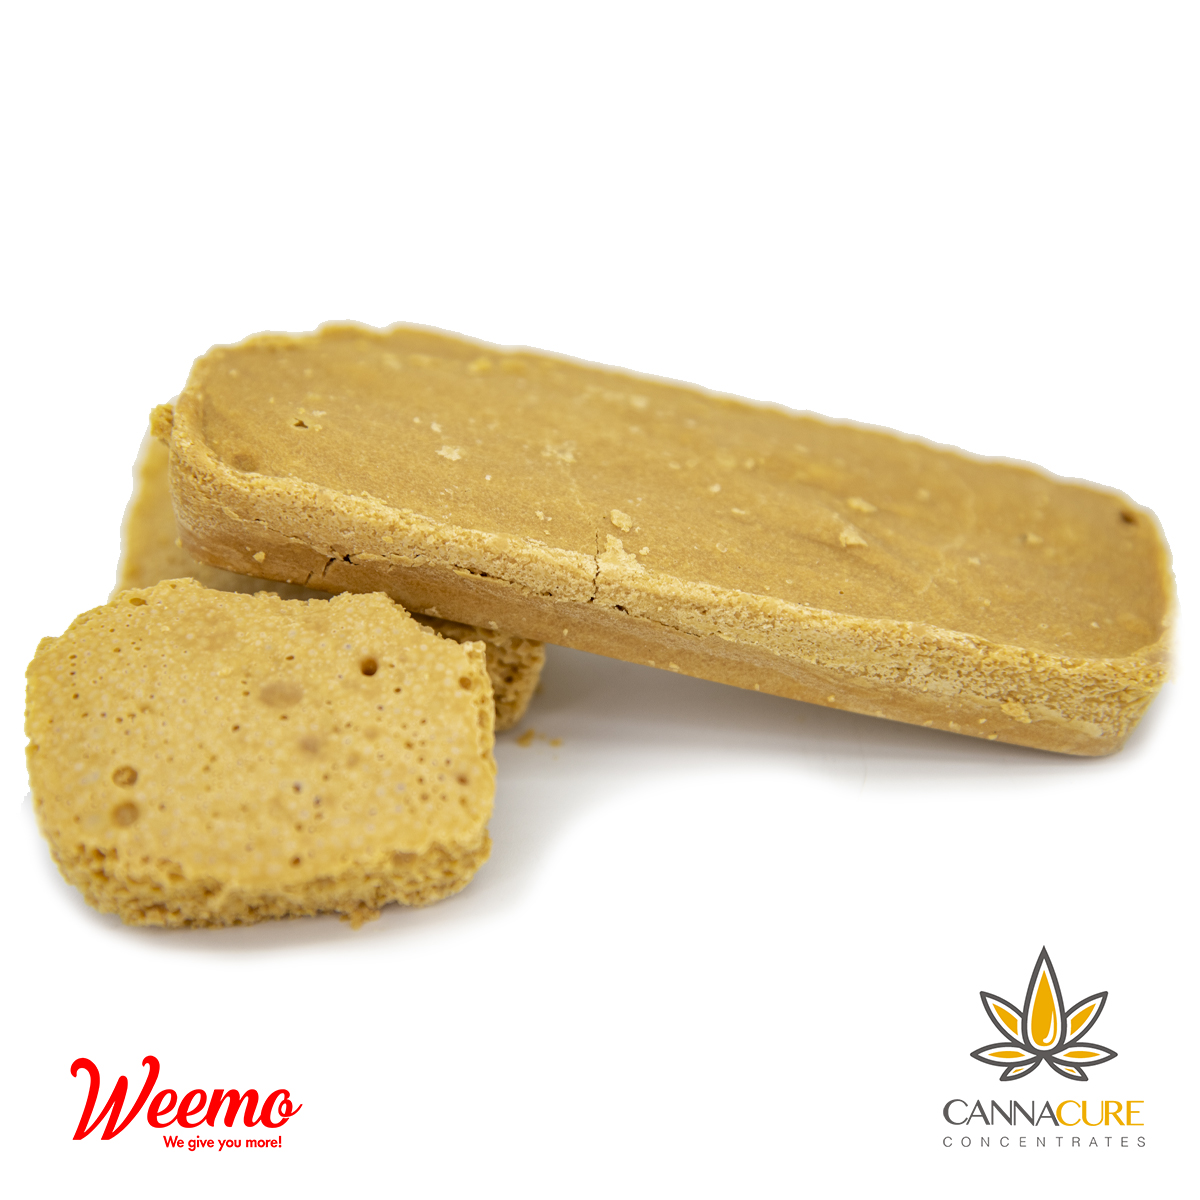 Cannacure Budder by Weemo - Image © 2019 Weemo. All Rights Reserved.